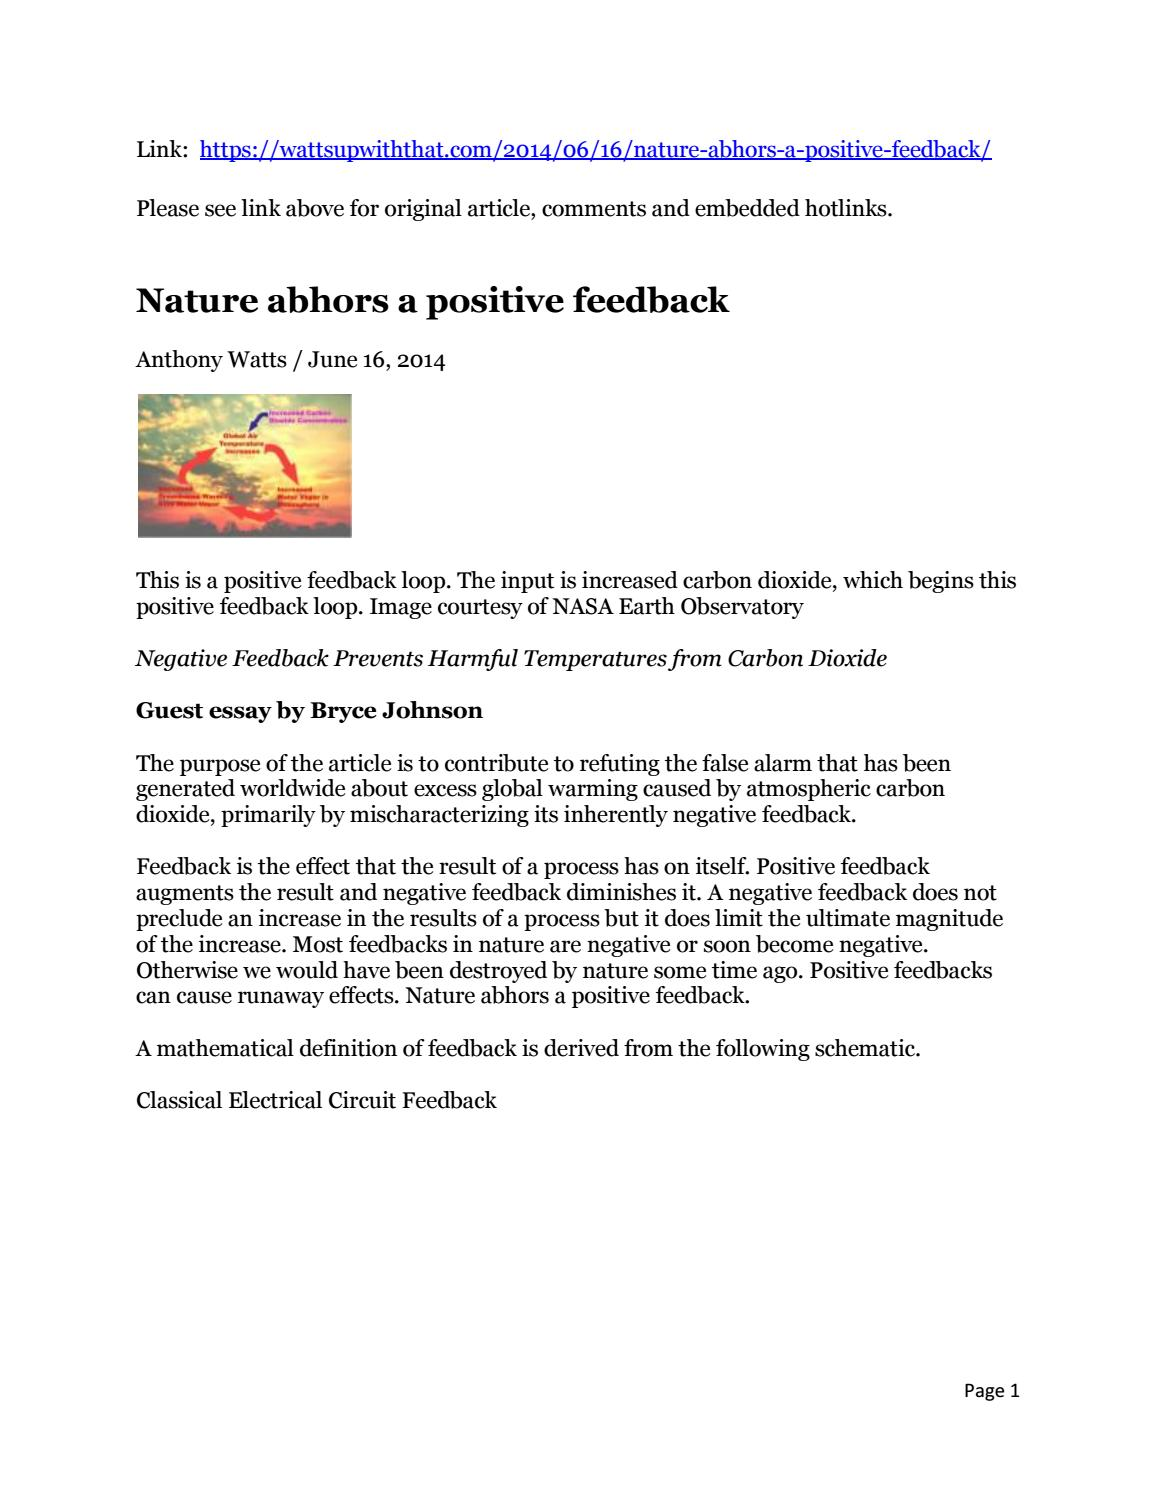 Nature Abhors A Positive Feedback Bryce Johnson By John Negative Schematic Shanahan Issuu